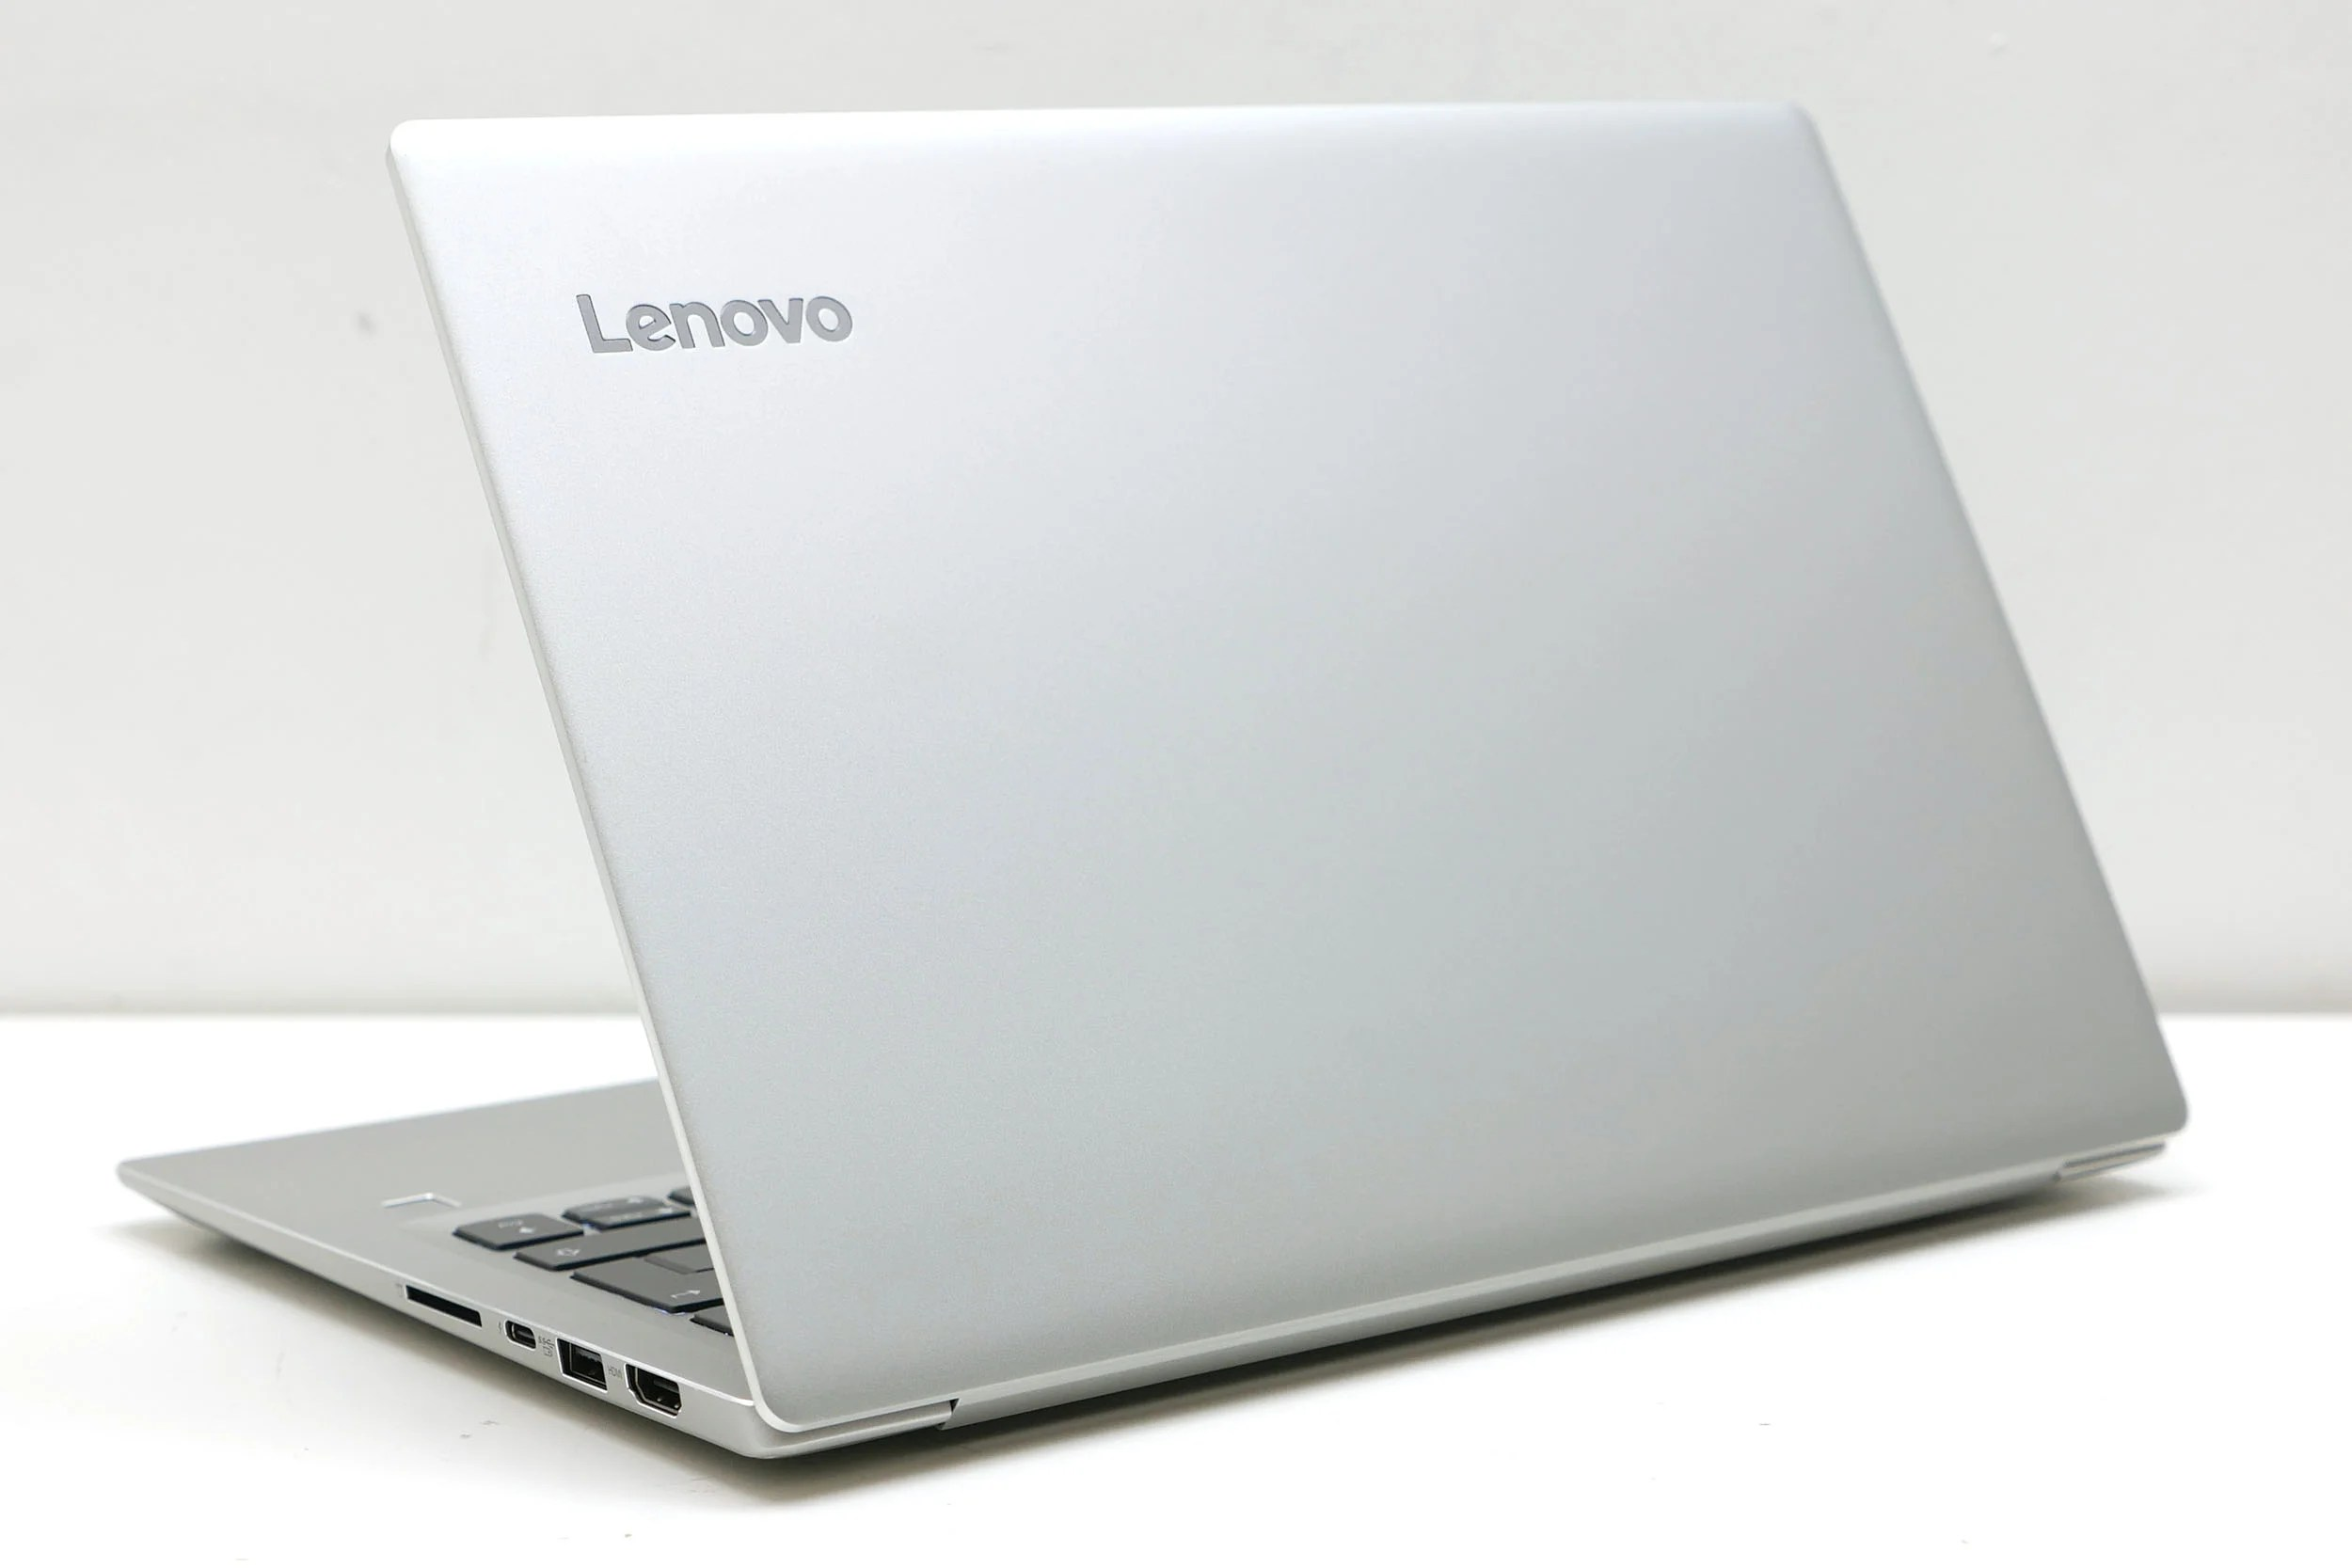 Lenovo Laptop Lenovo Ideapad 720s Review Trusted Reviews